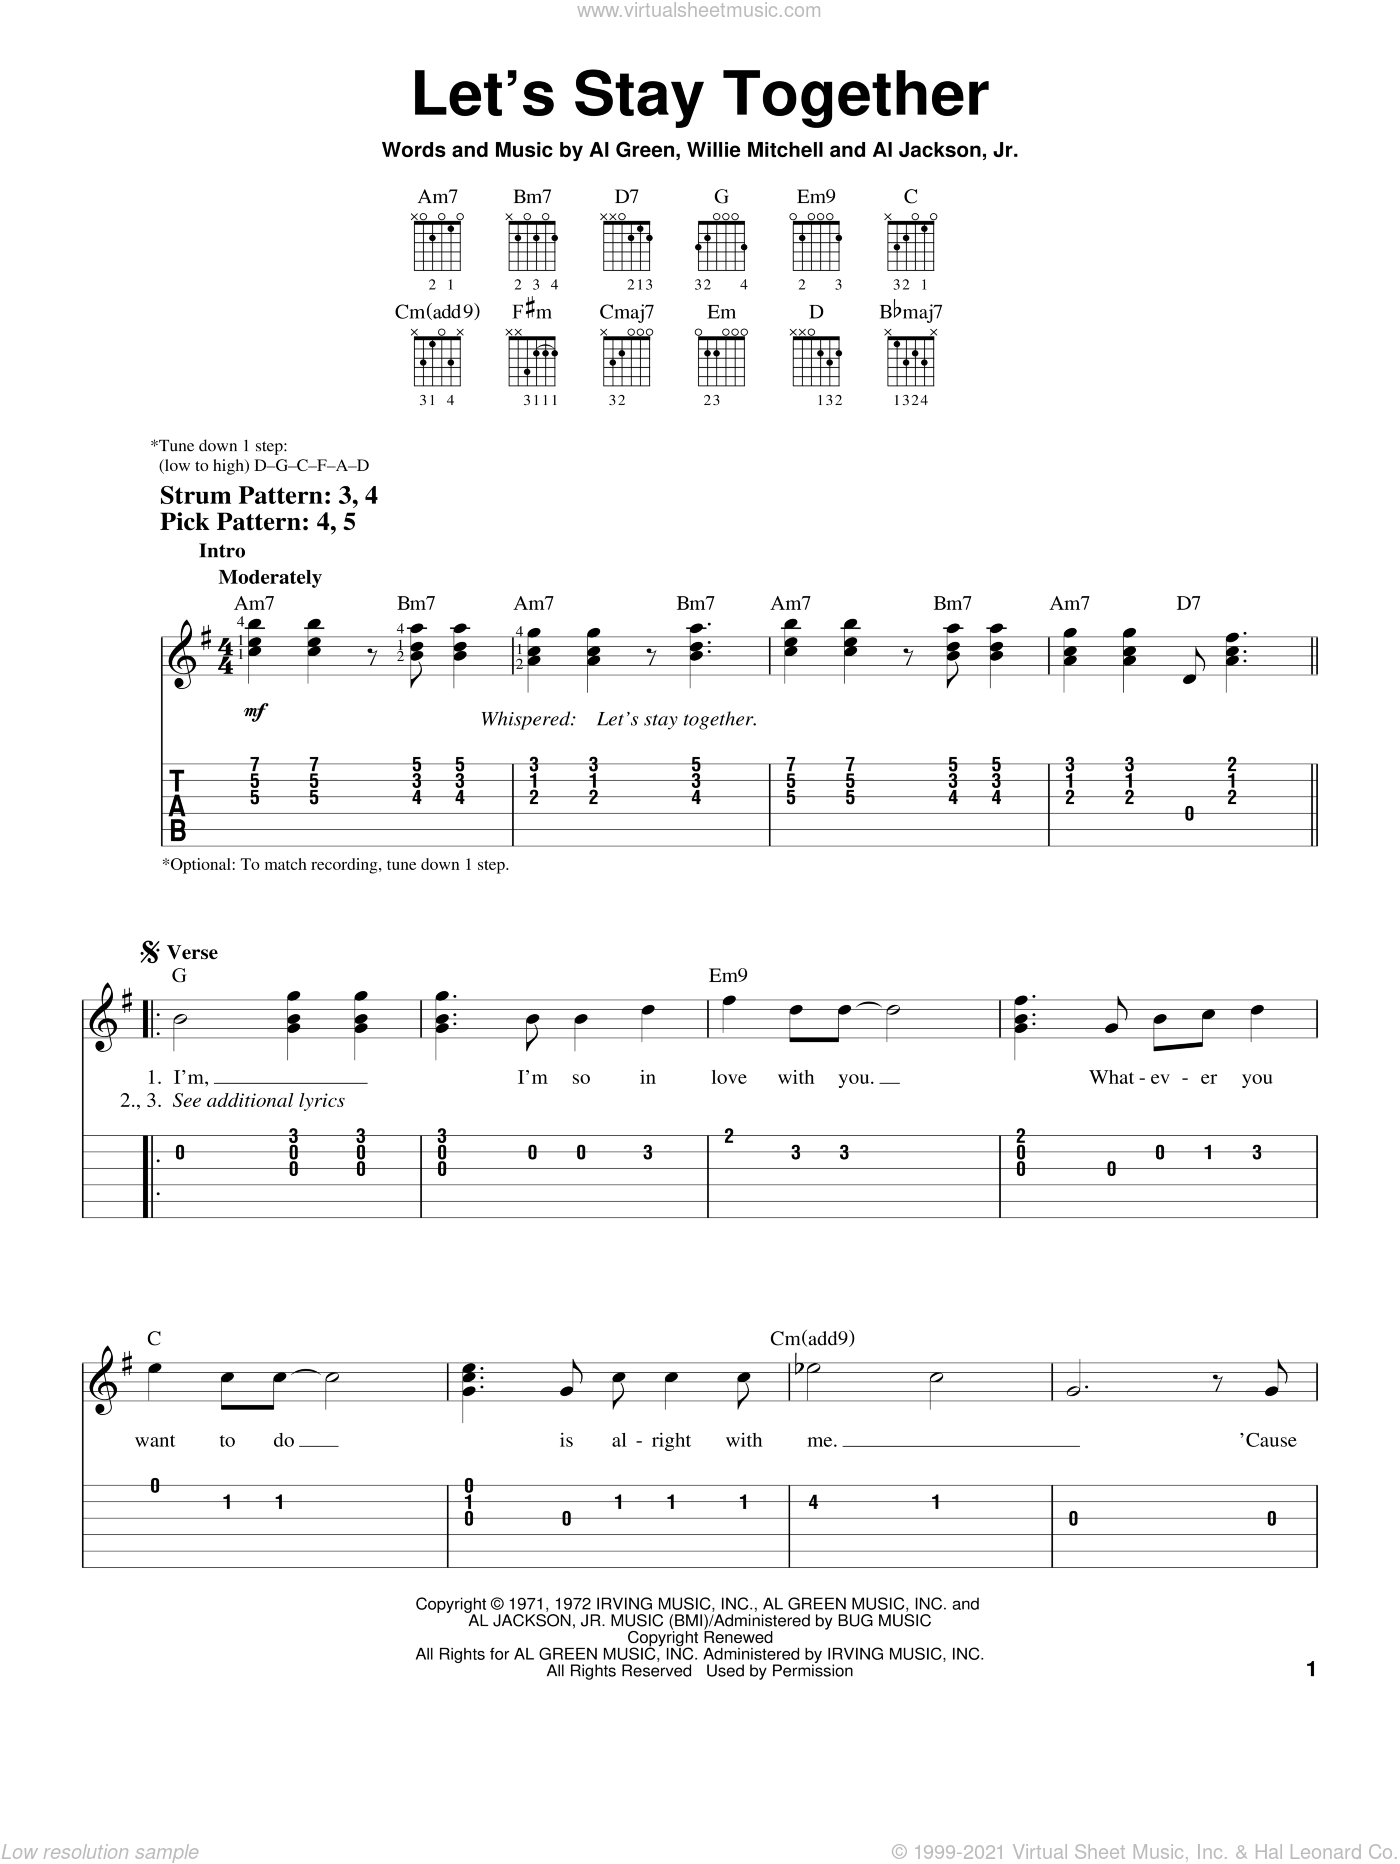 Let's Stay Together sheet music for guitar solo (chords) by Willie Mitchell